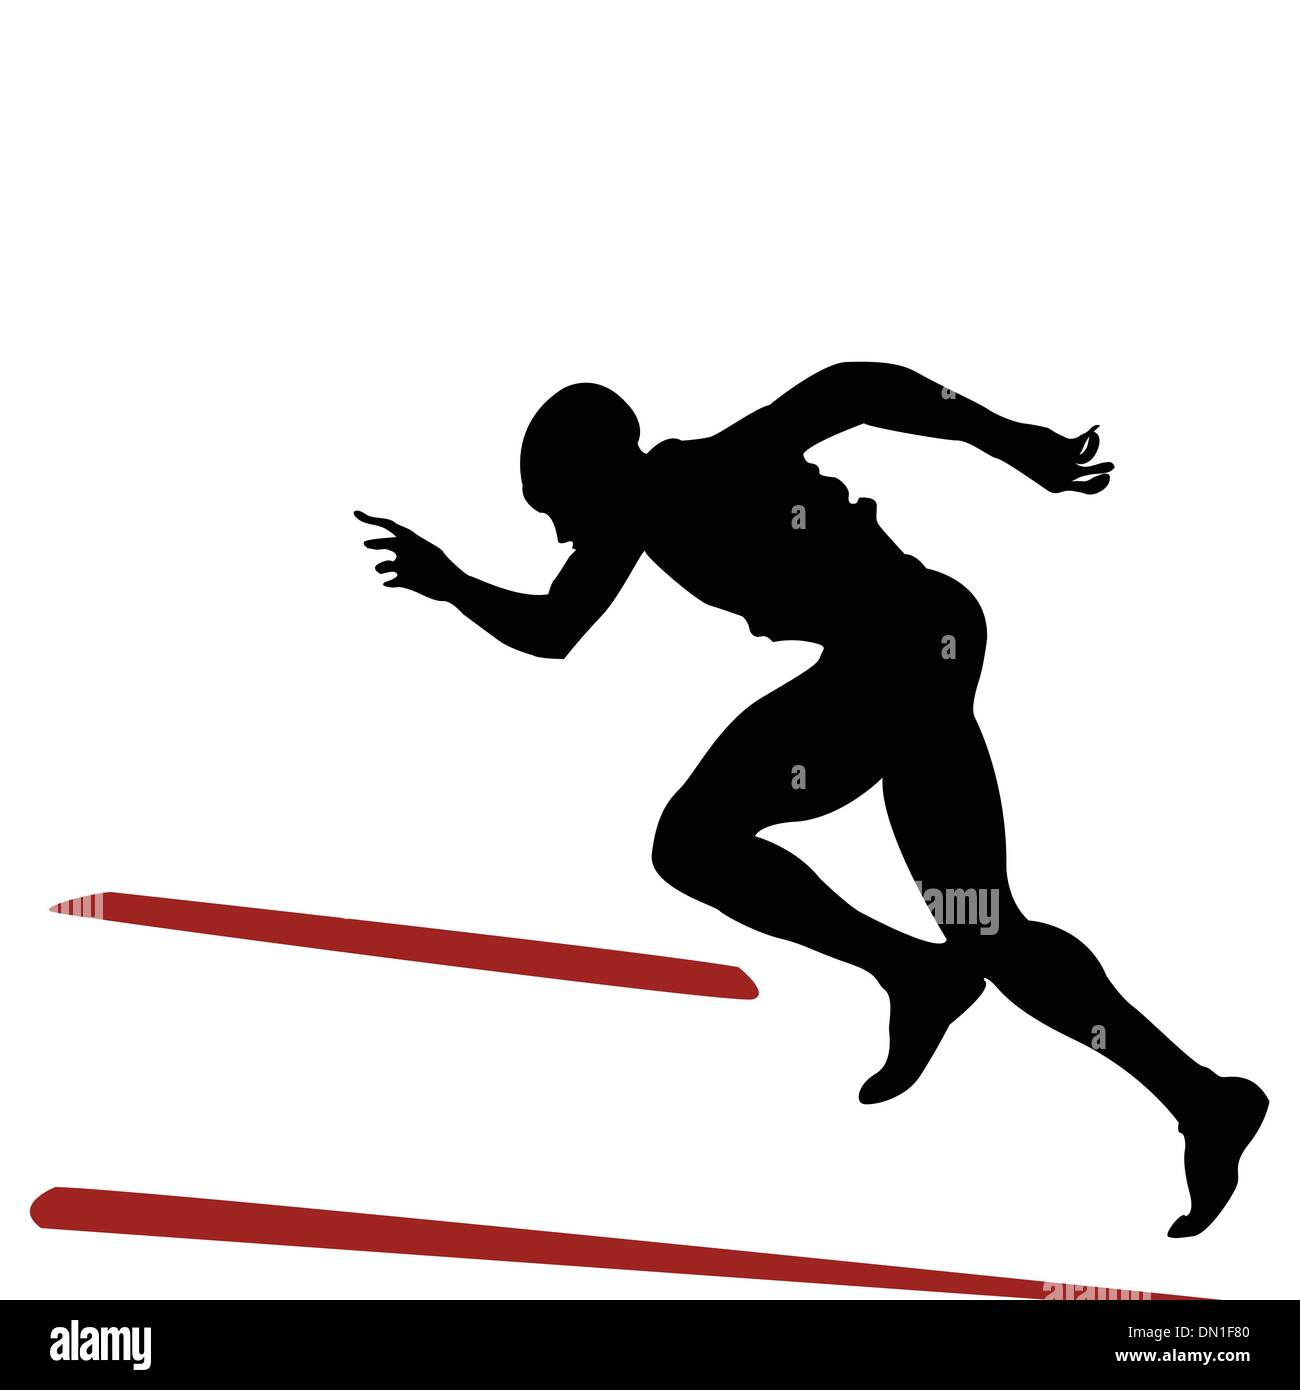 runner - Stock Image